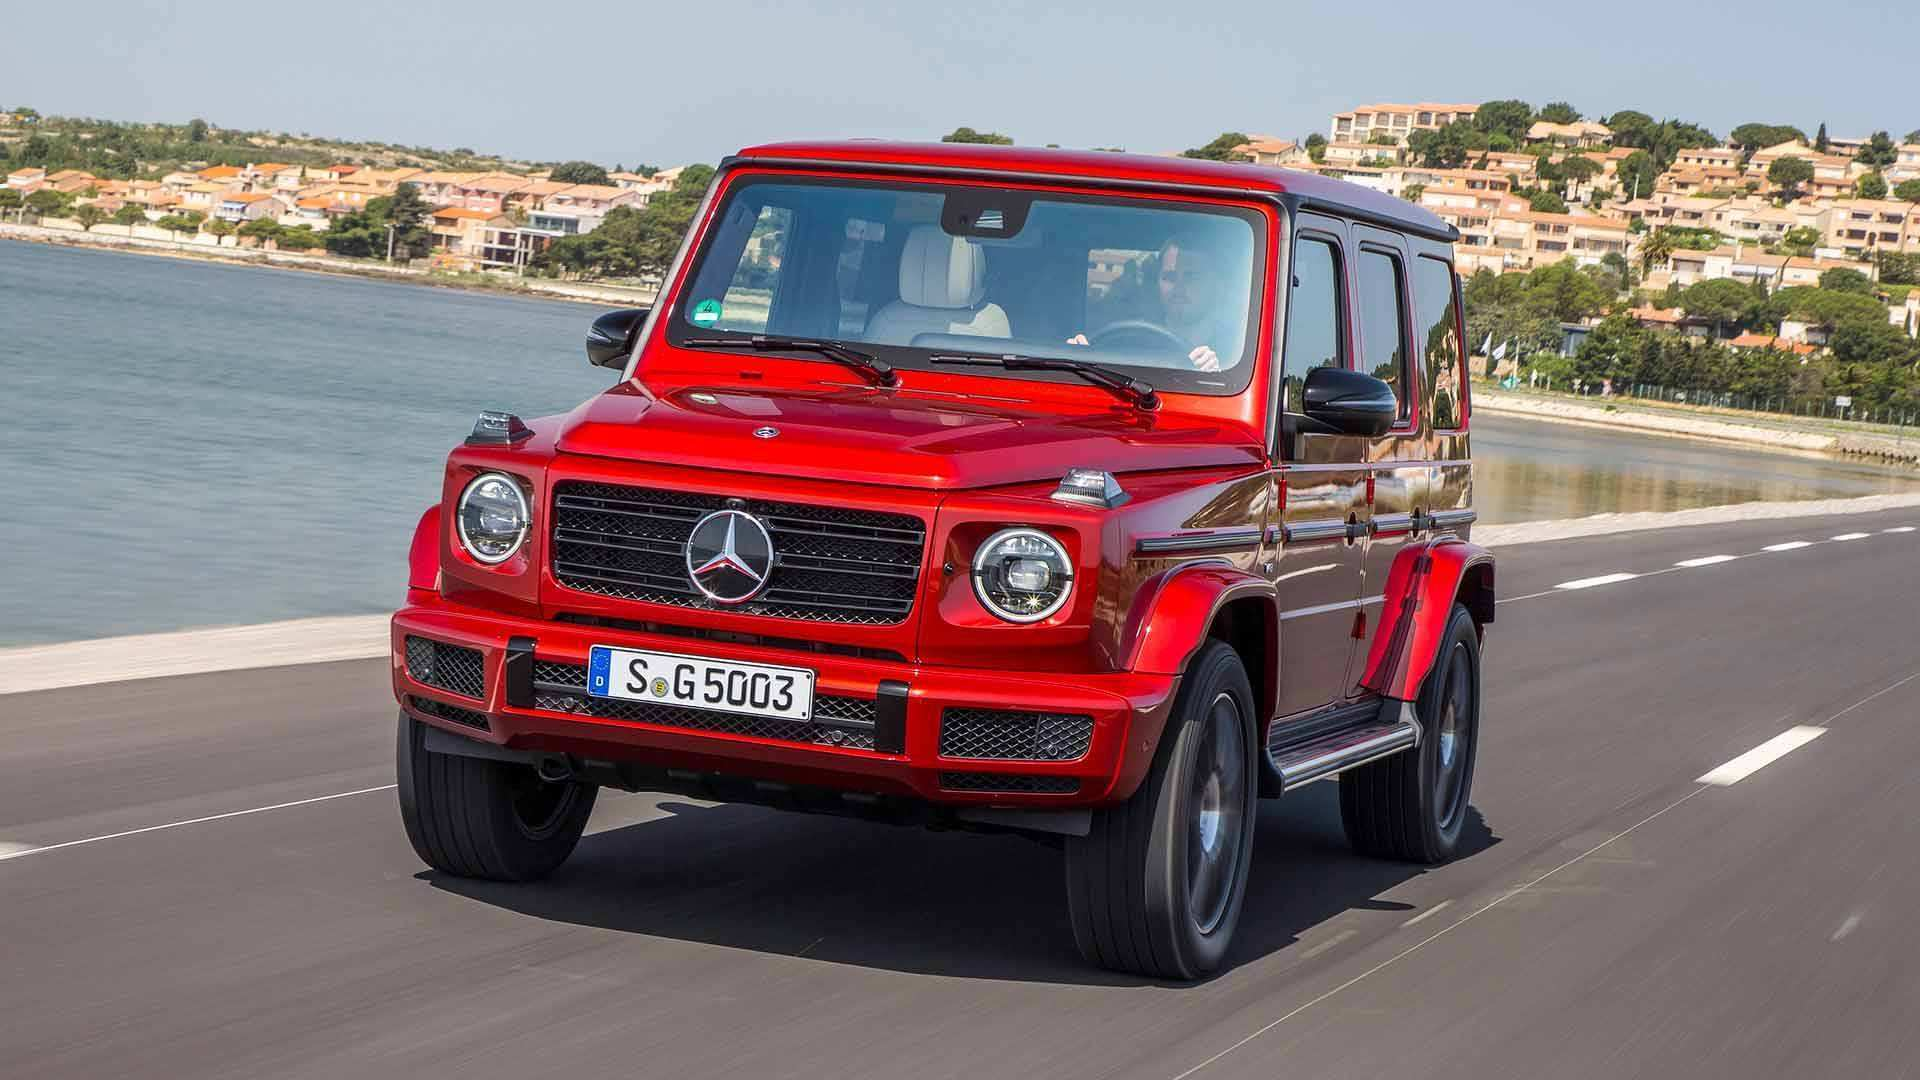 87 All New G550 Mercedes 2020 Images with G550 Mercedes 2020